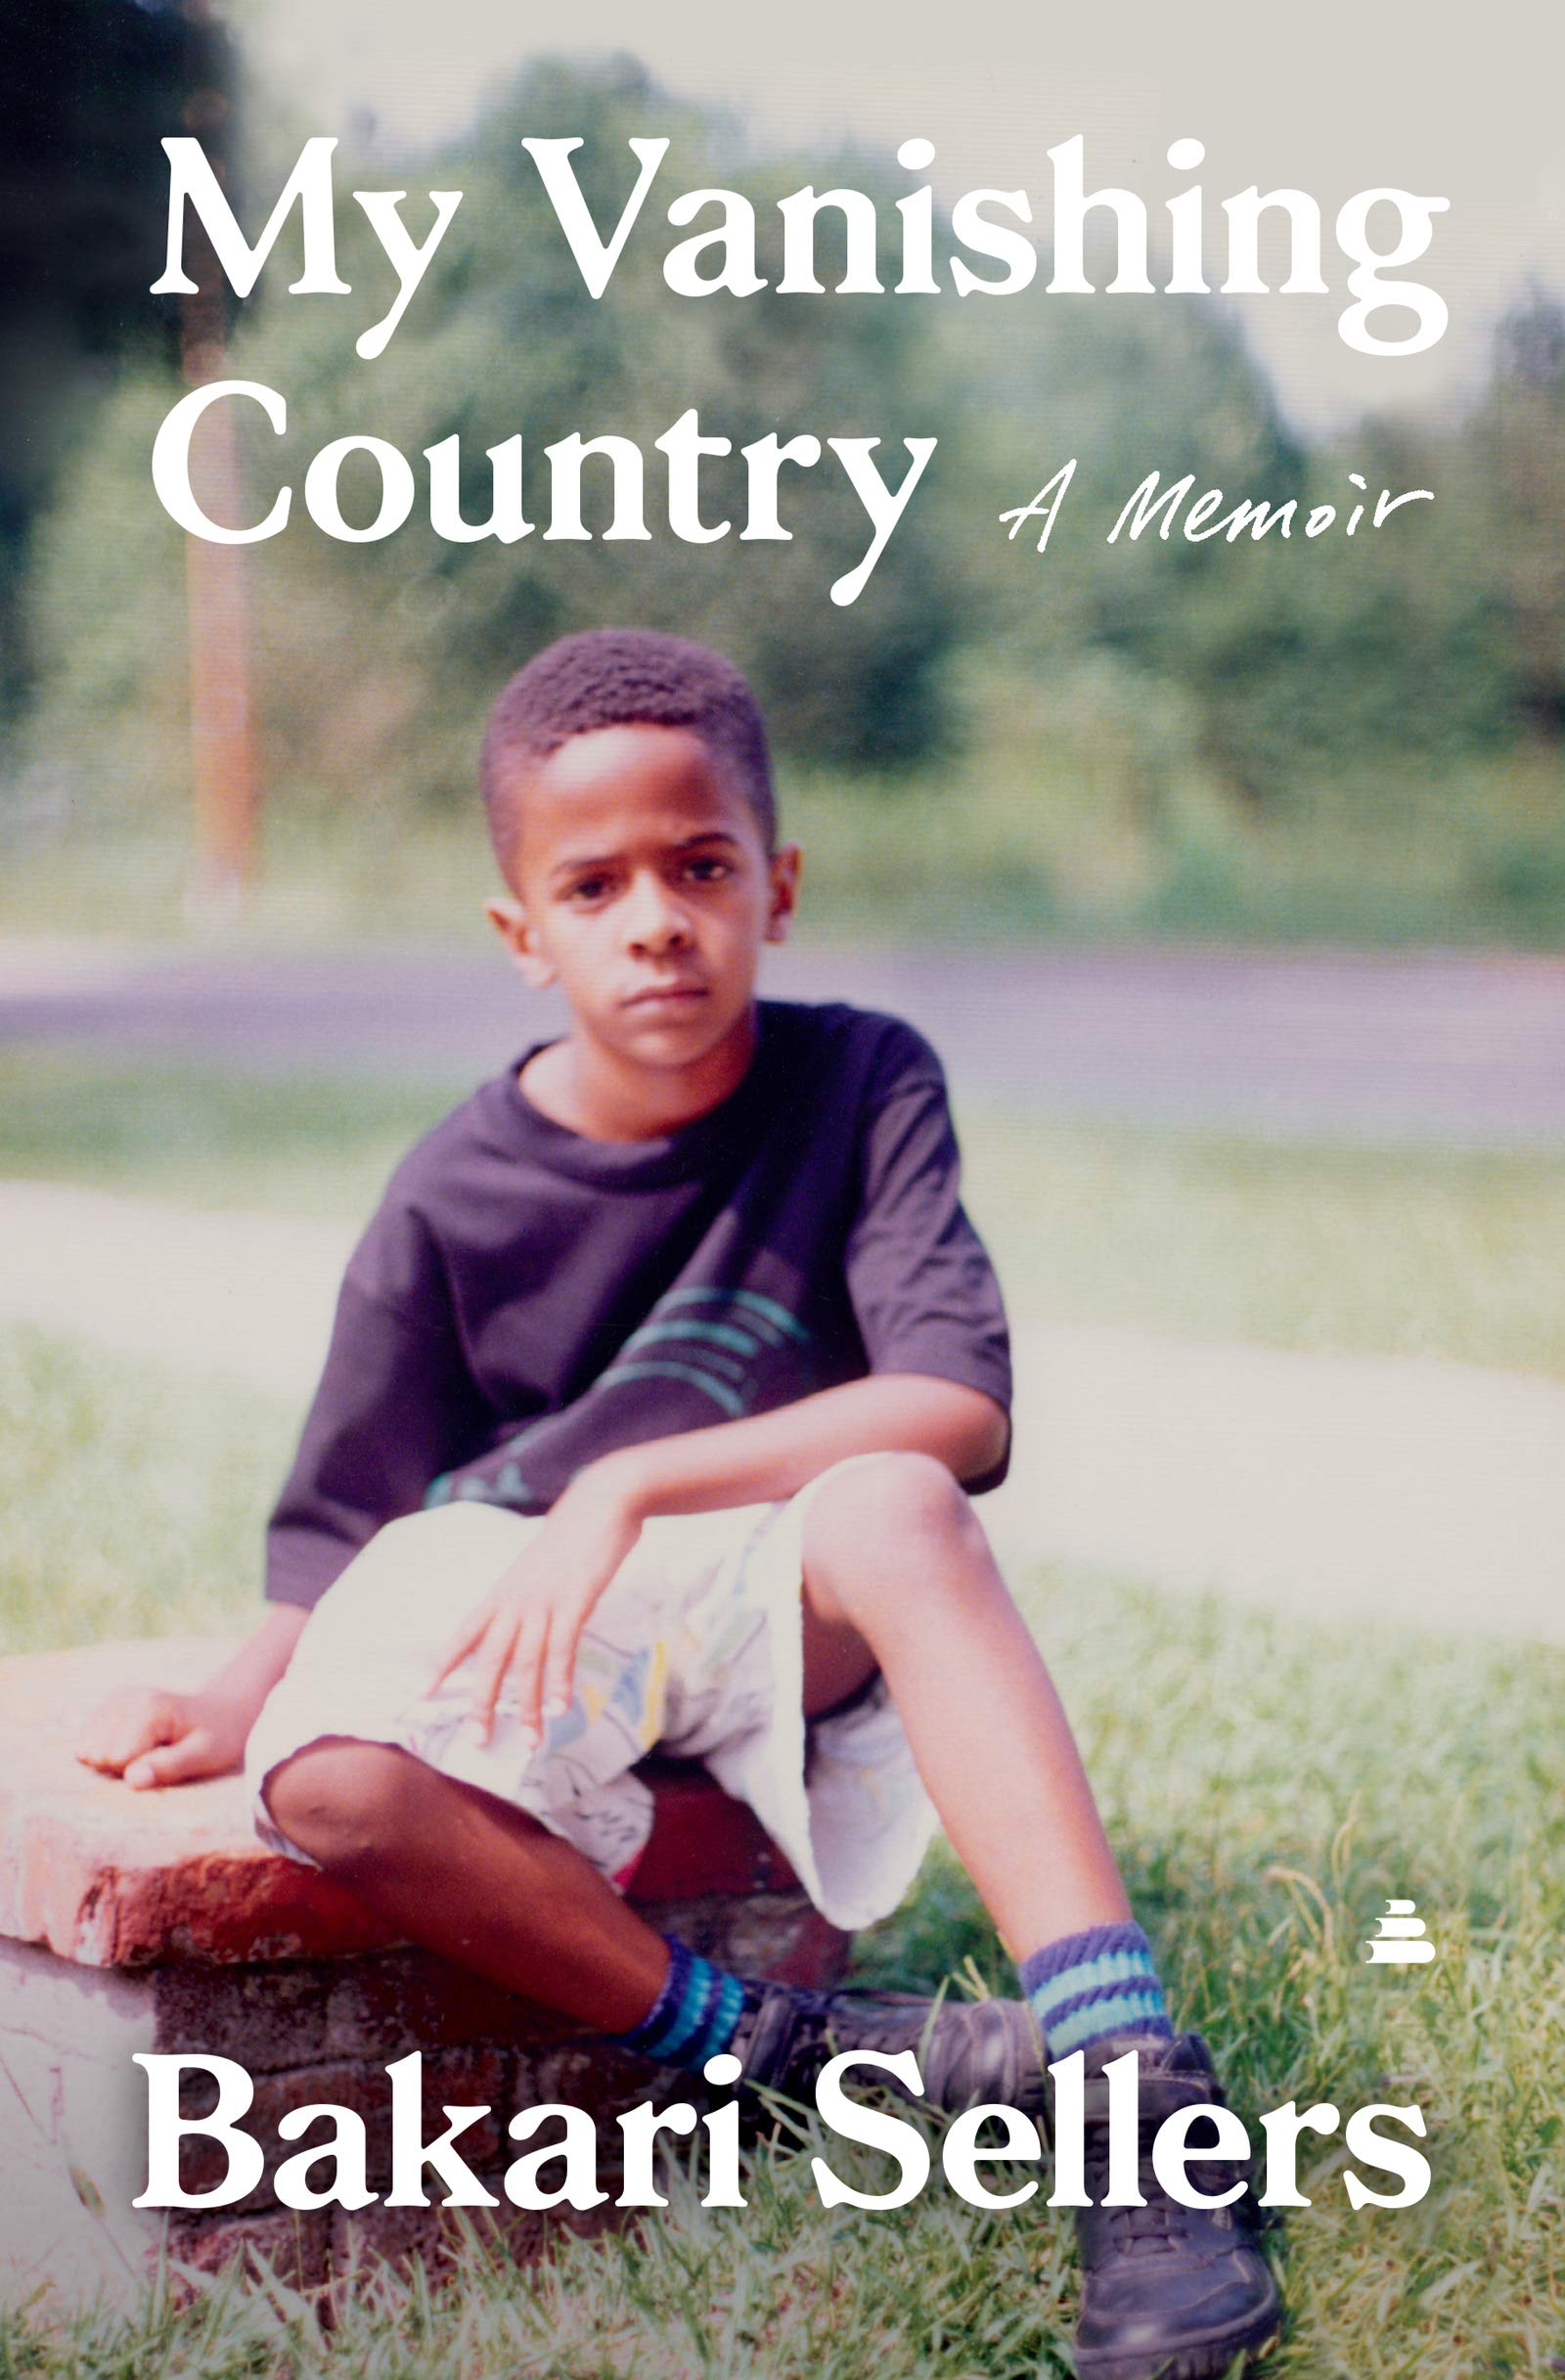 Book cover of My Vanishing Country